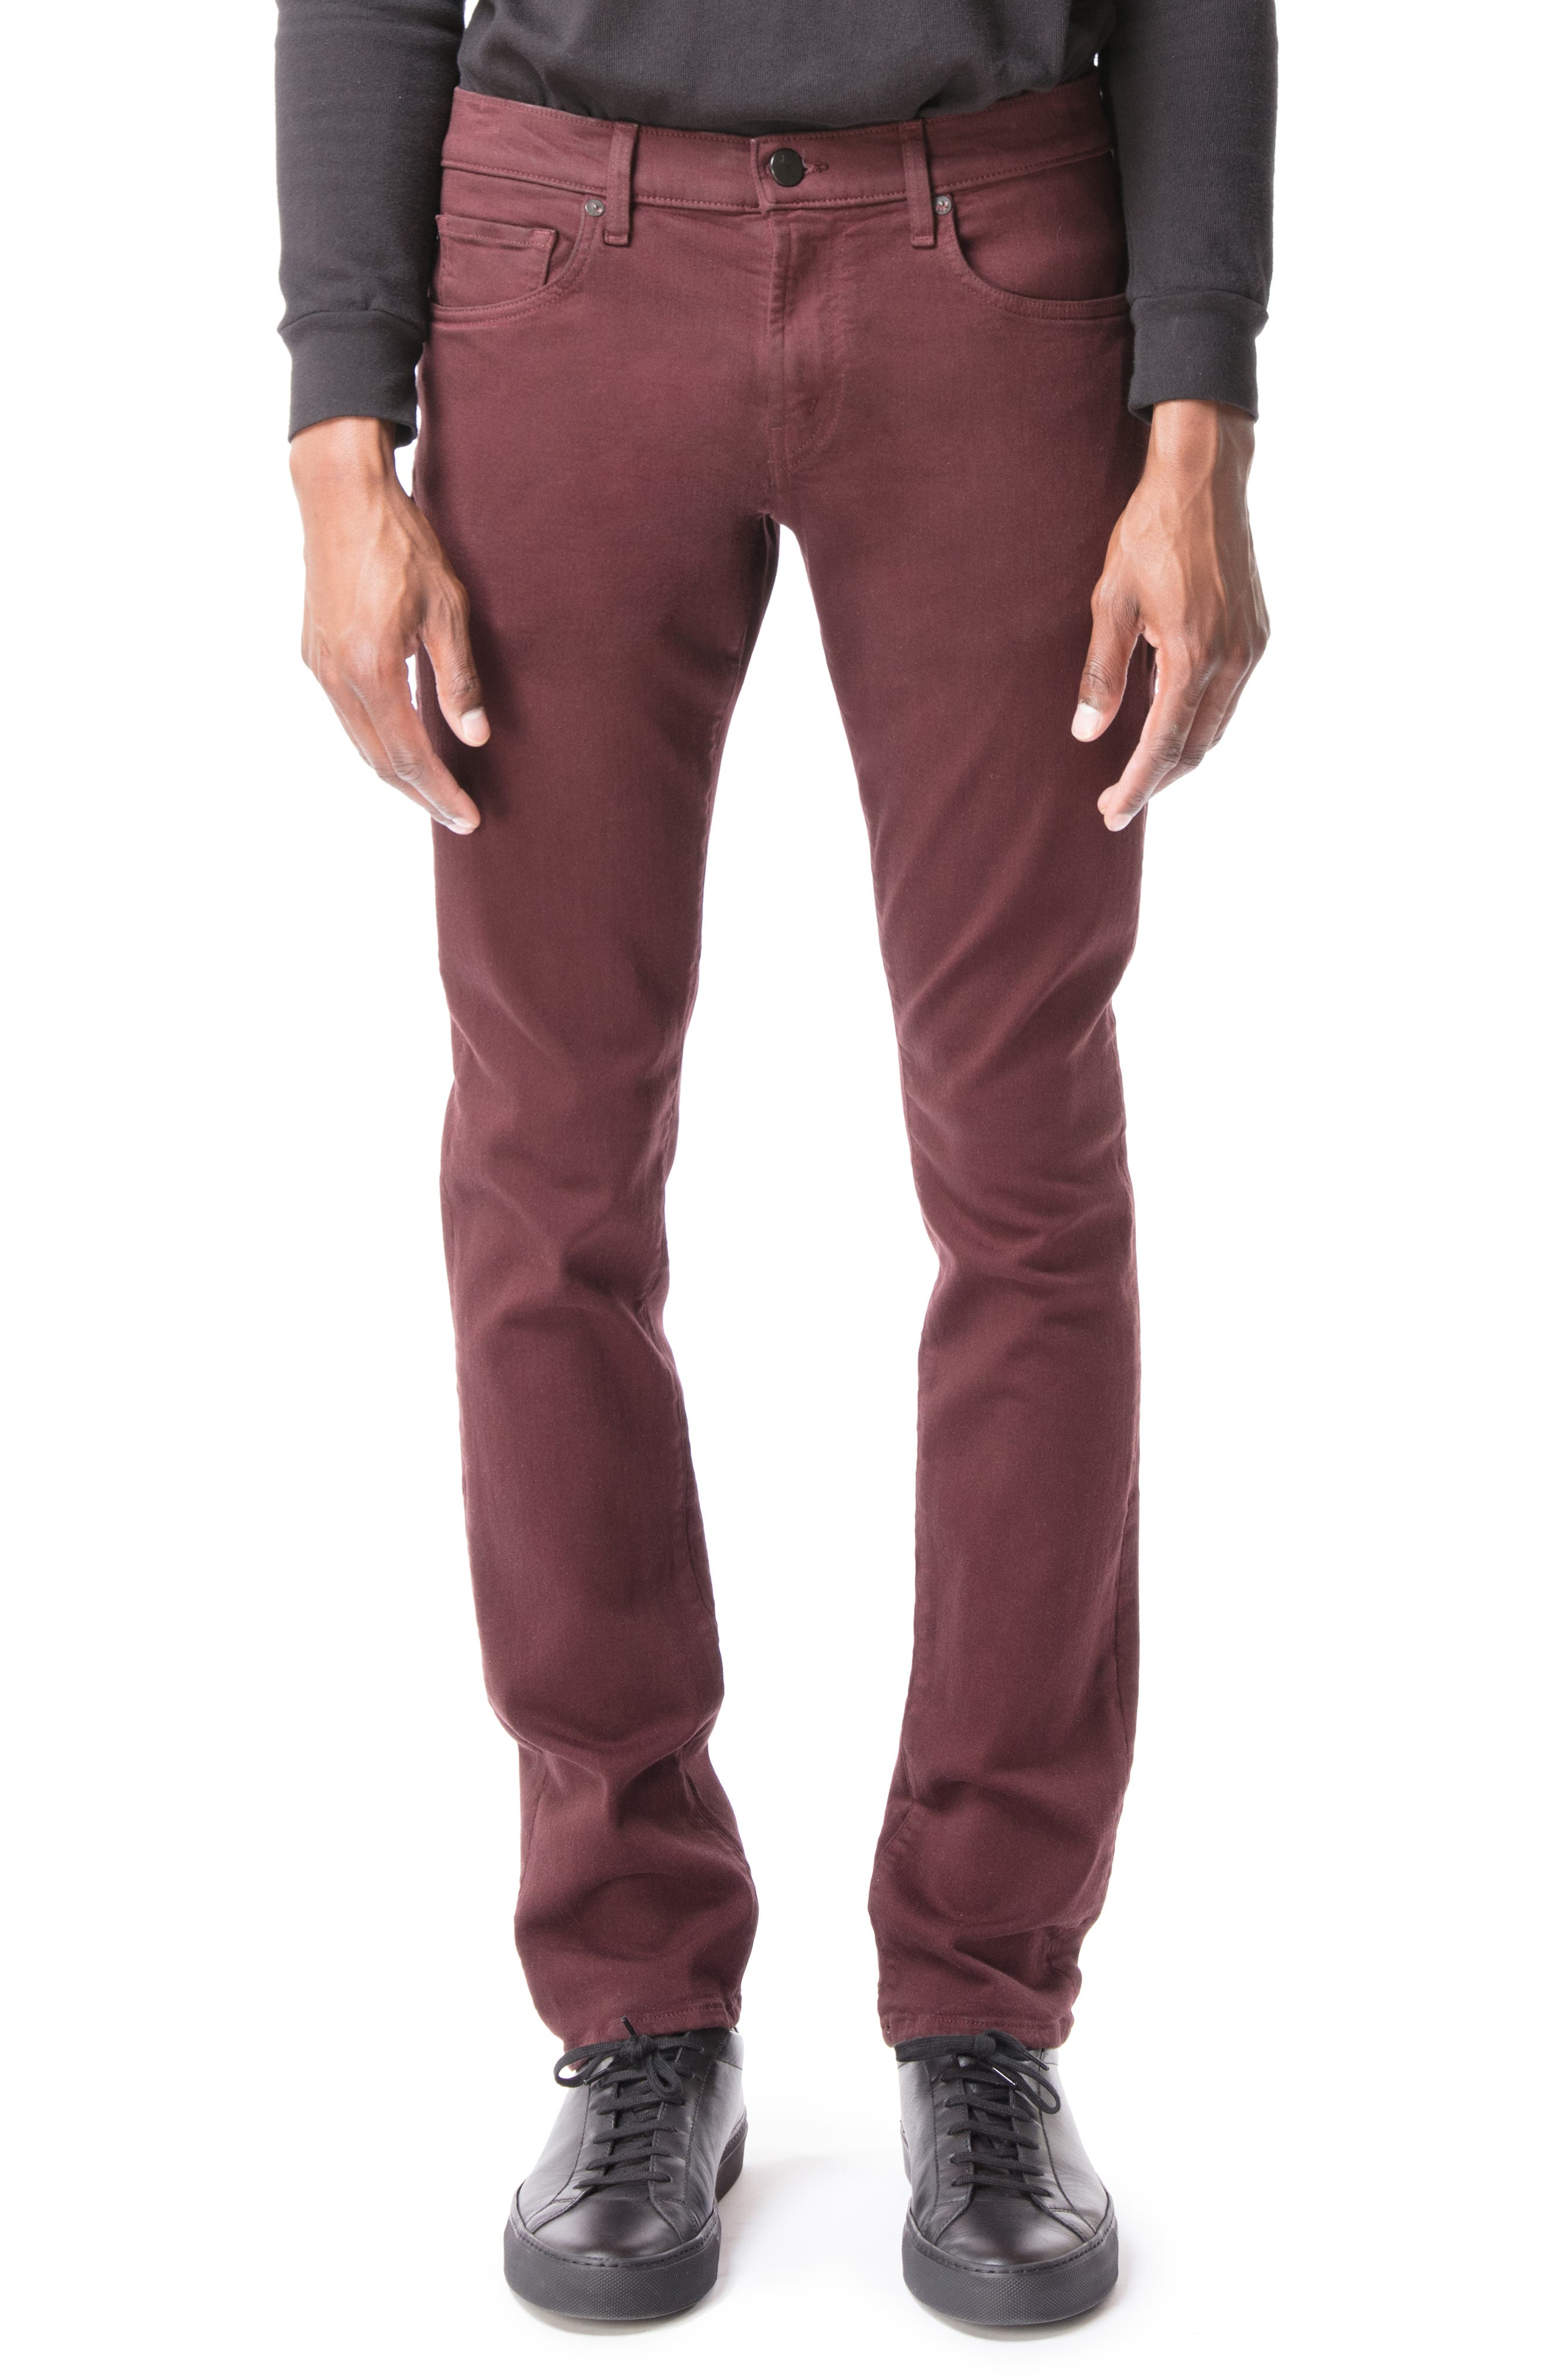 J BRAND Men'S Tyler Slim-Fit Jeans - Seriously Soft Stretch Twill in Wine